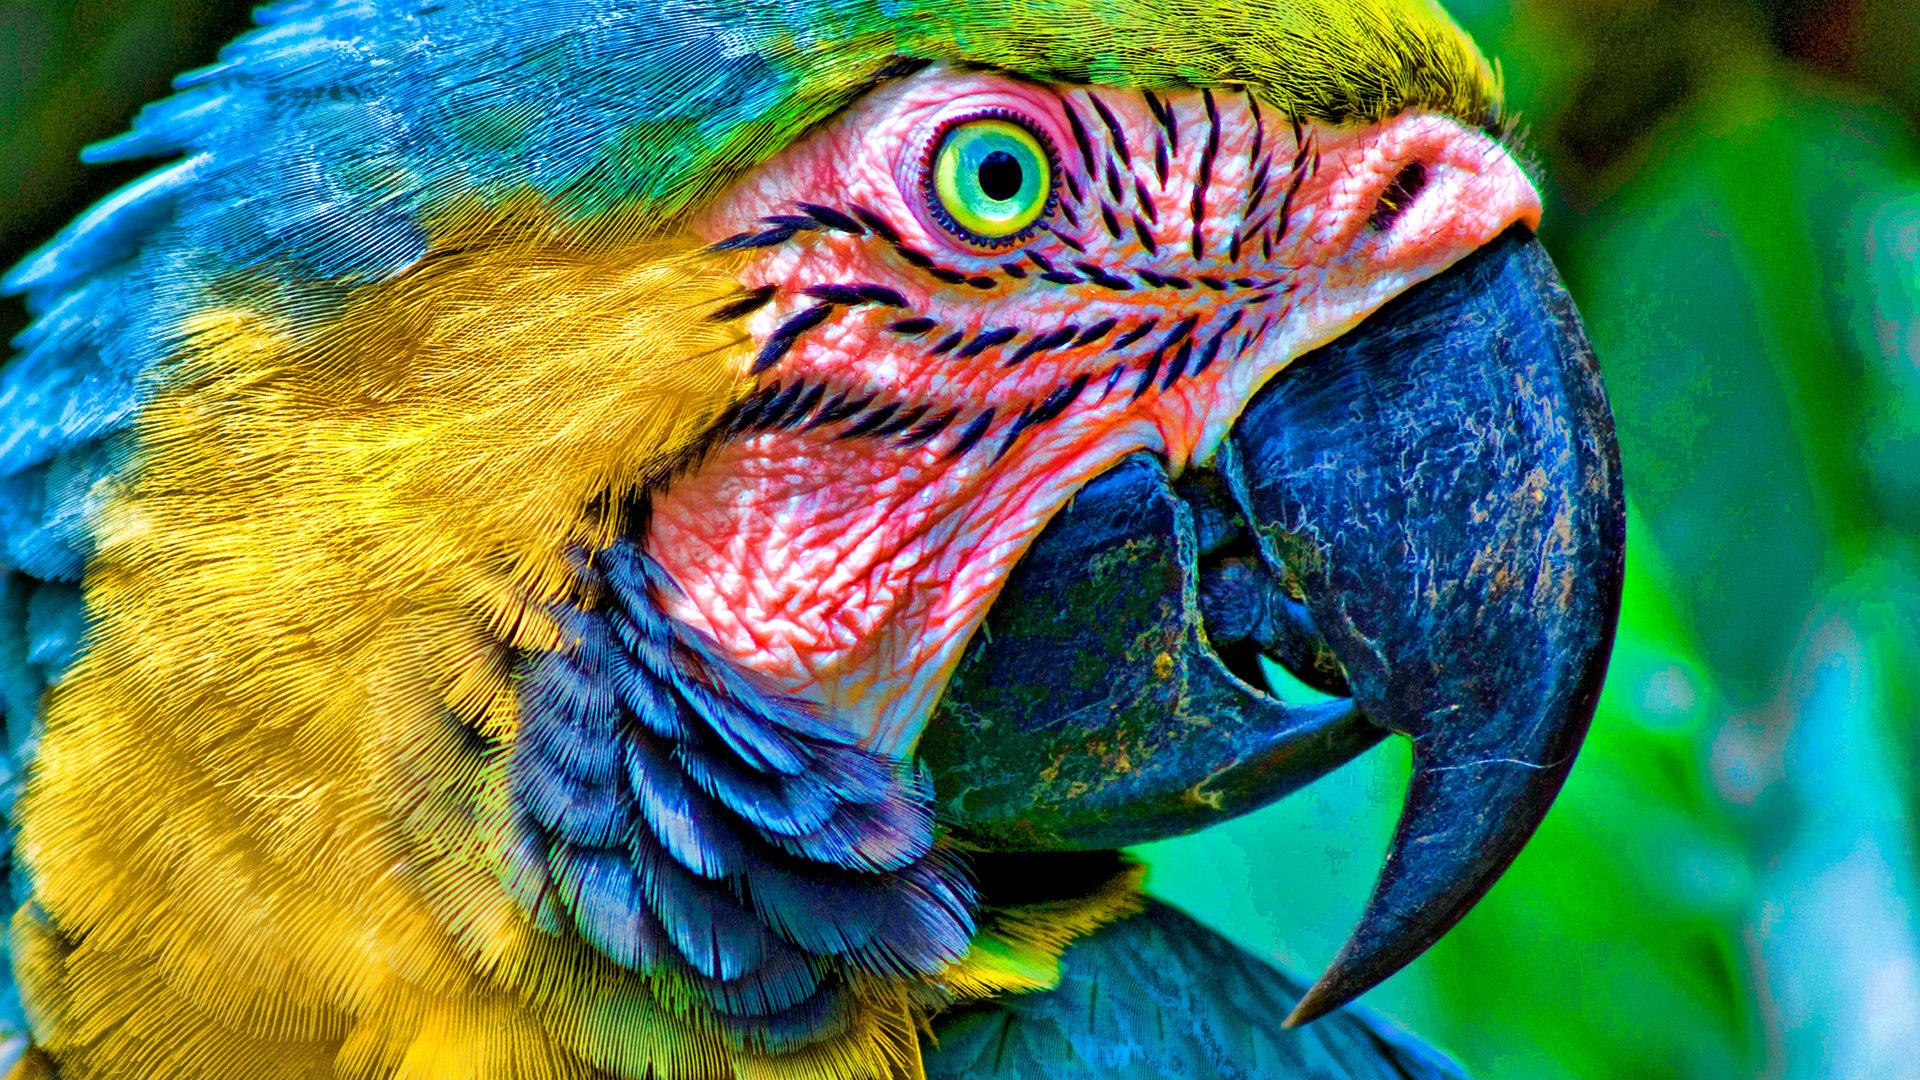 Macaw wallpapers 1920x1080 Full HD